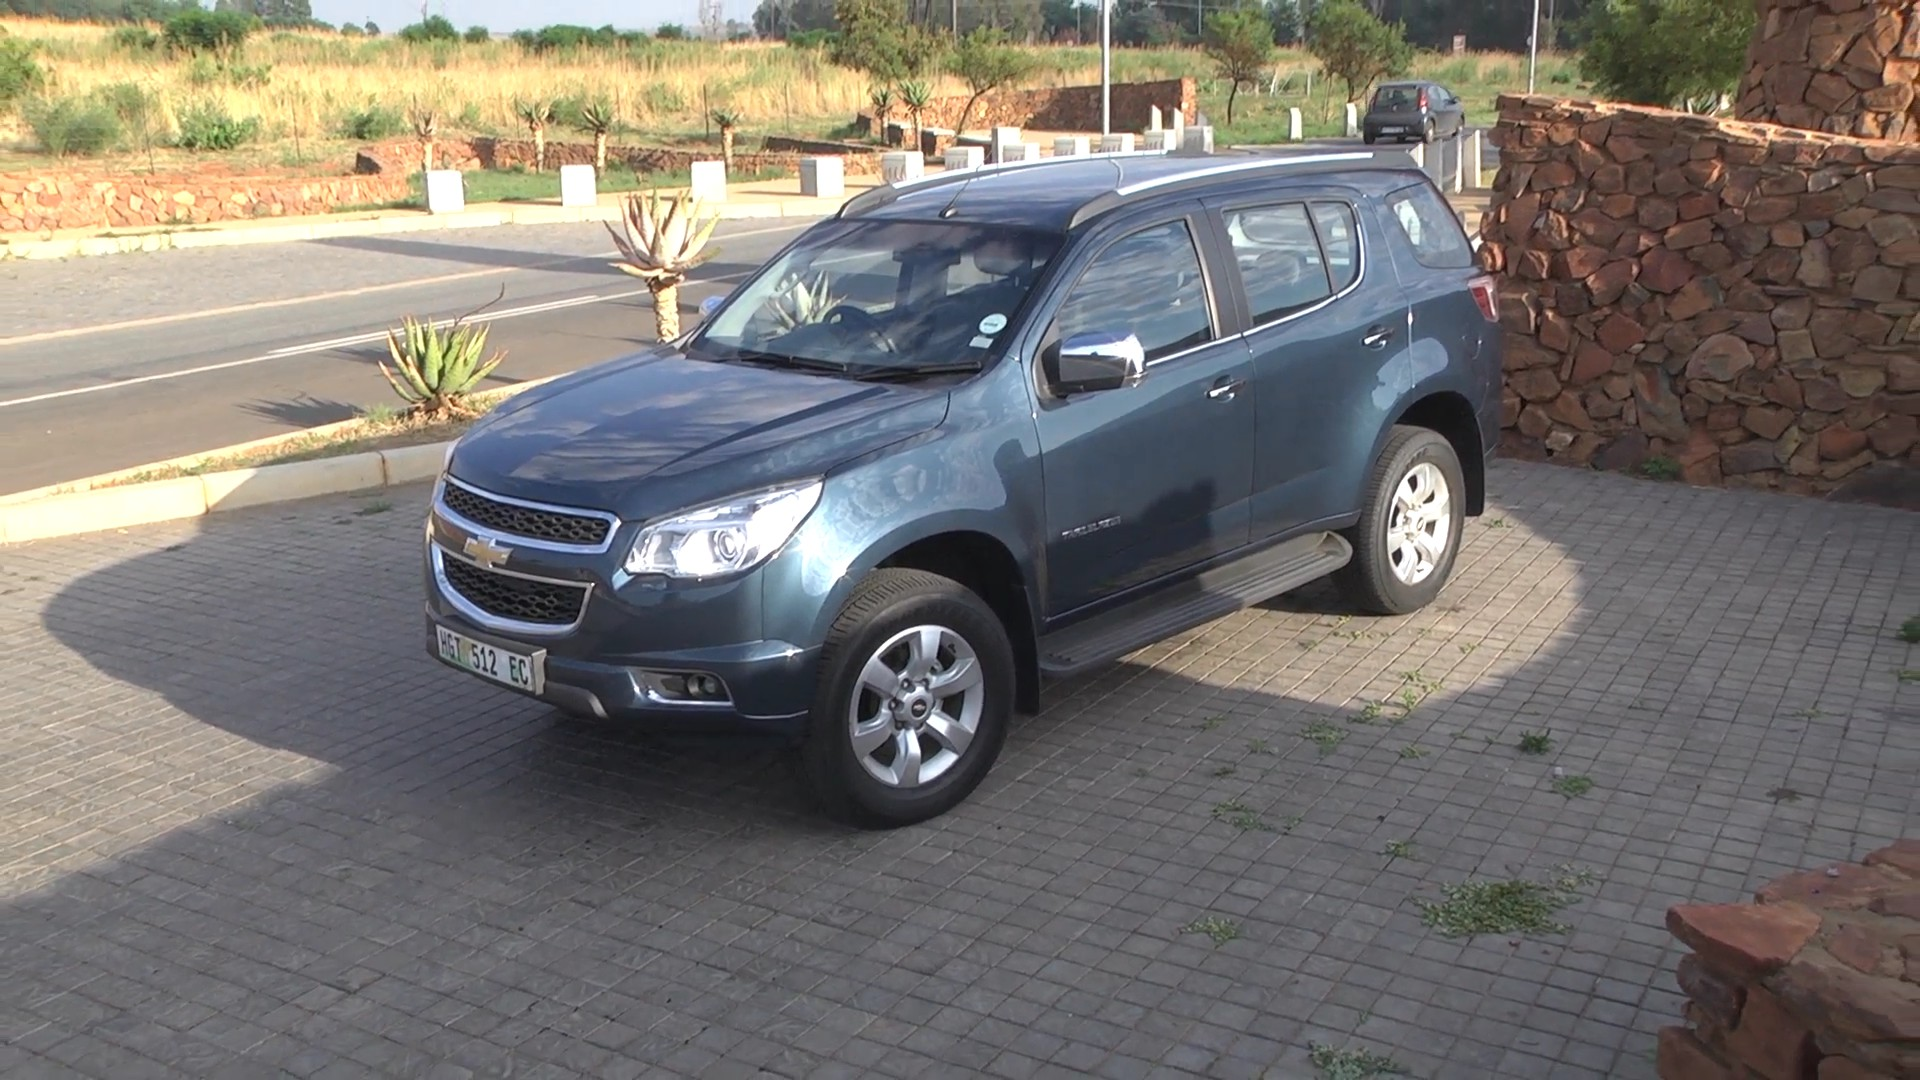 2014 chevrolet trailblazer new car review surf4cars. Cars Review. Best American Auto & Cars Review